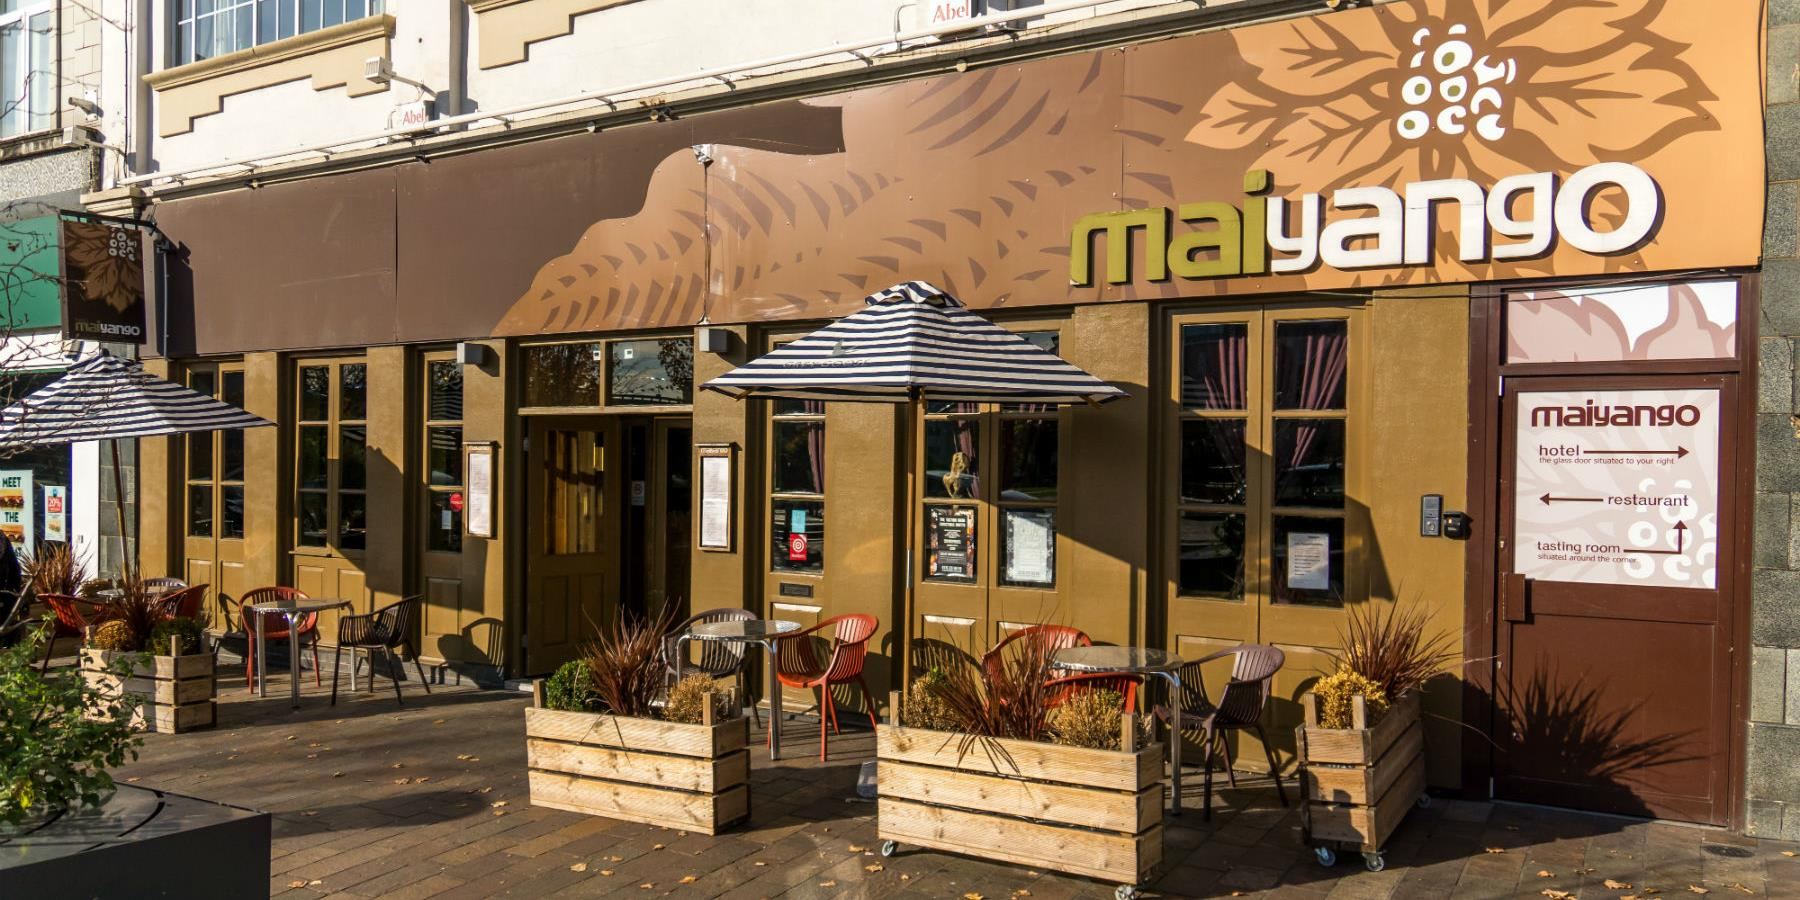 Maiyango Restaurant and Hotel - Eating and Drinking in Leicester, Hotels in Leicester